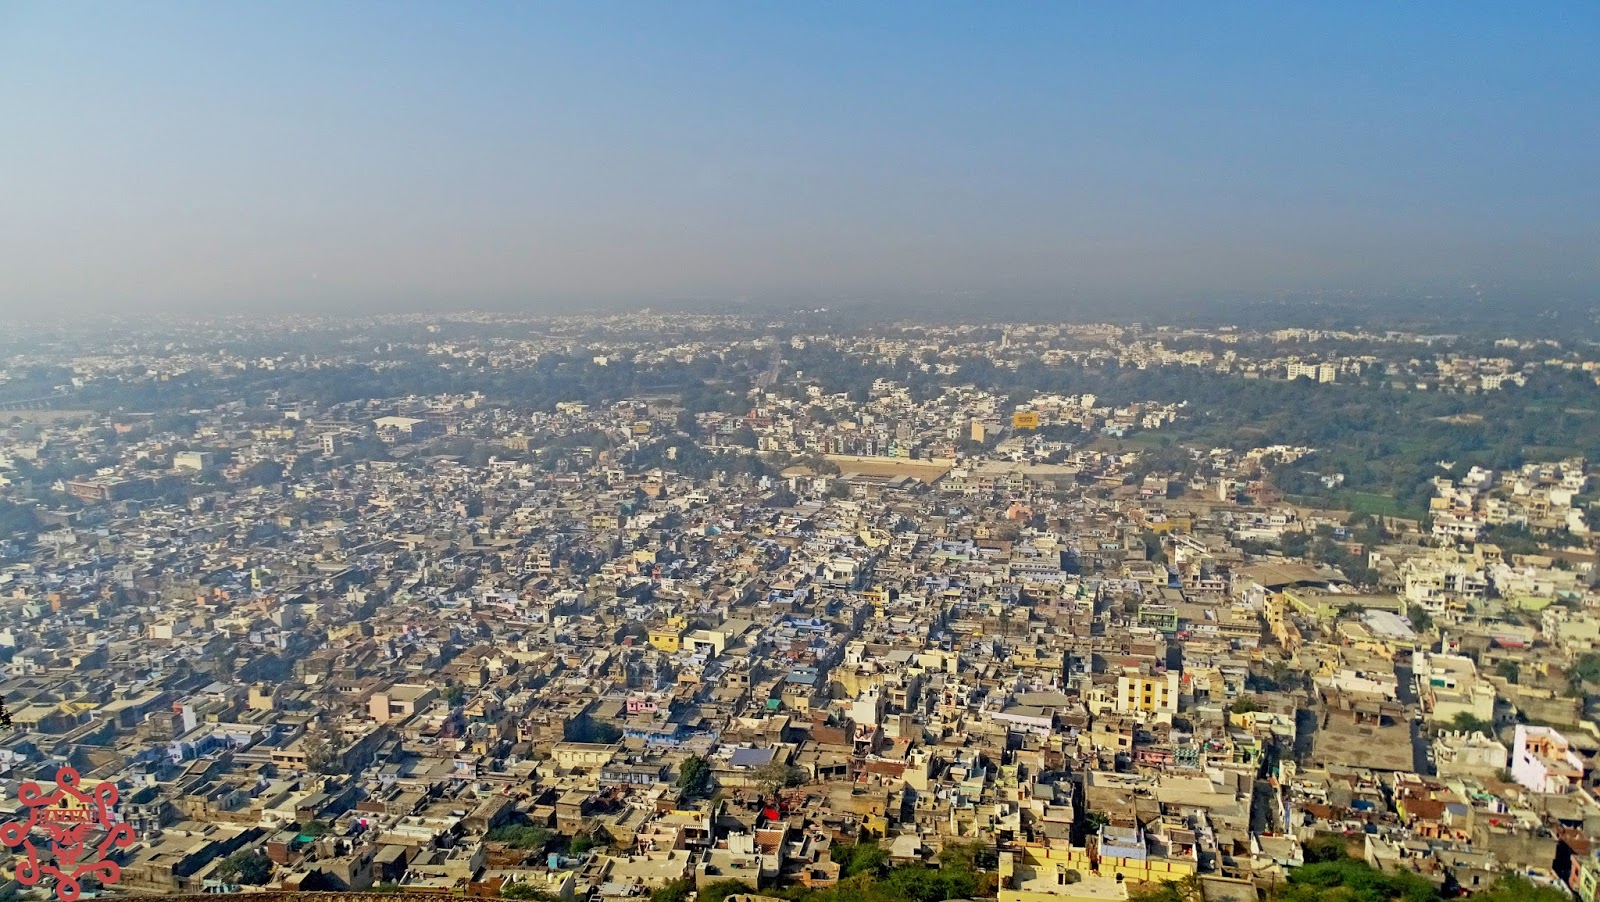 View of Chittorgarh City